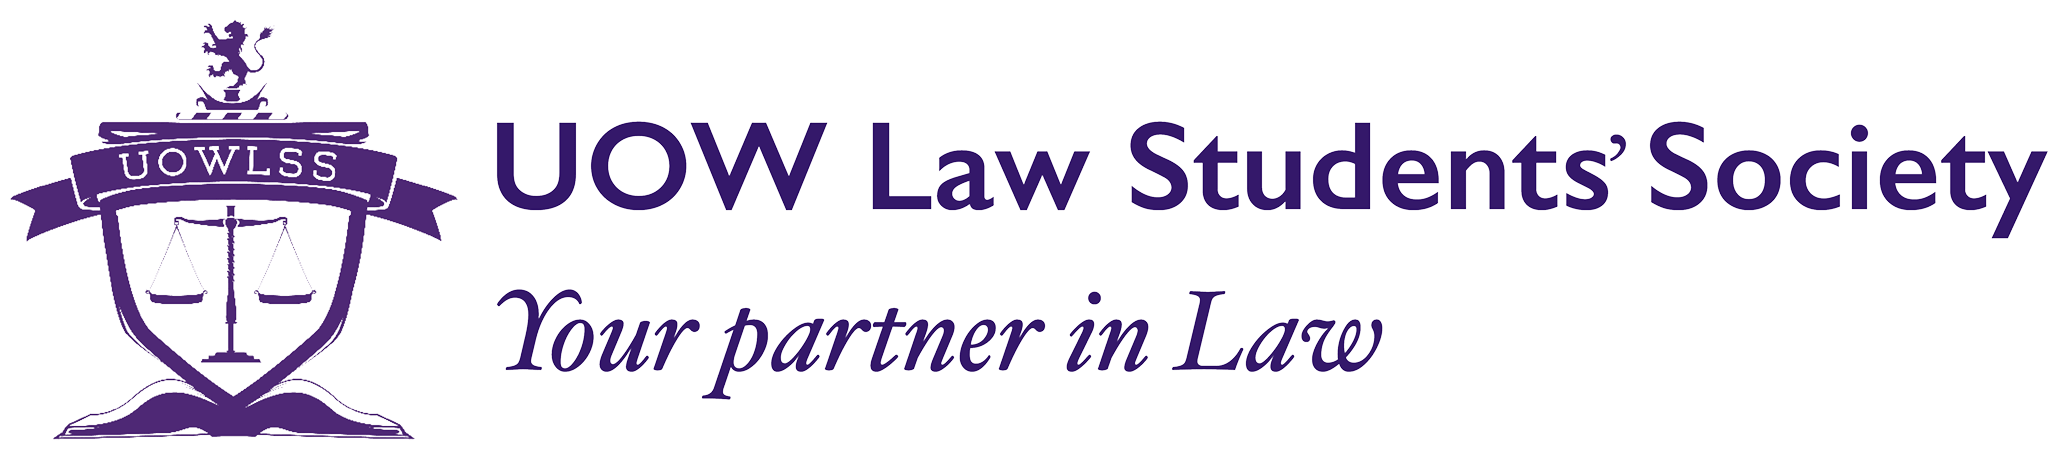 University of Wollongong Law Students' Society